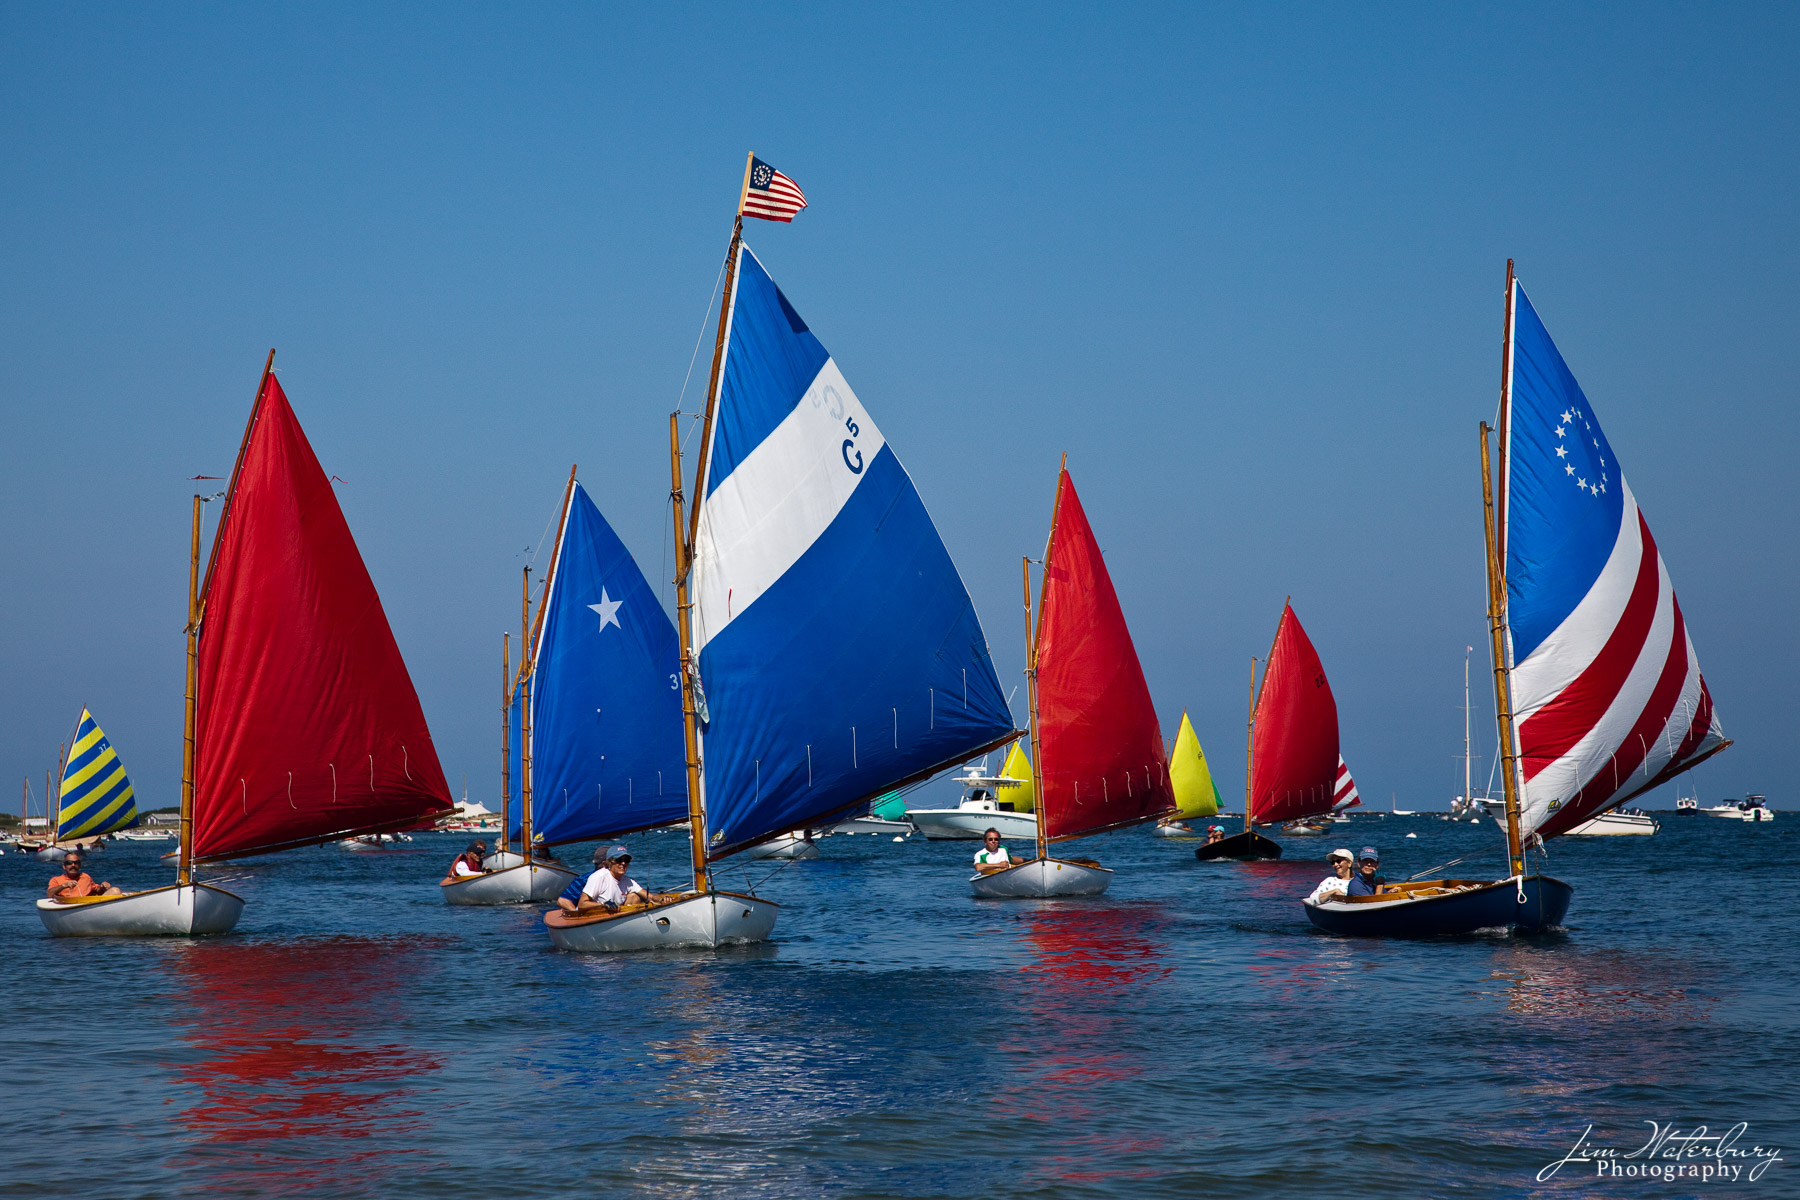 Members of the Nantucket Rainbow fleet, with their colorful red, white and blue sails, kick off the final day of sailing at the...